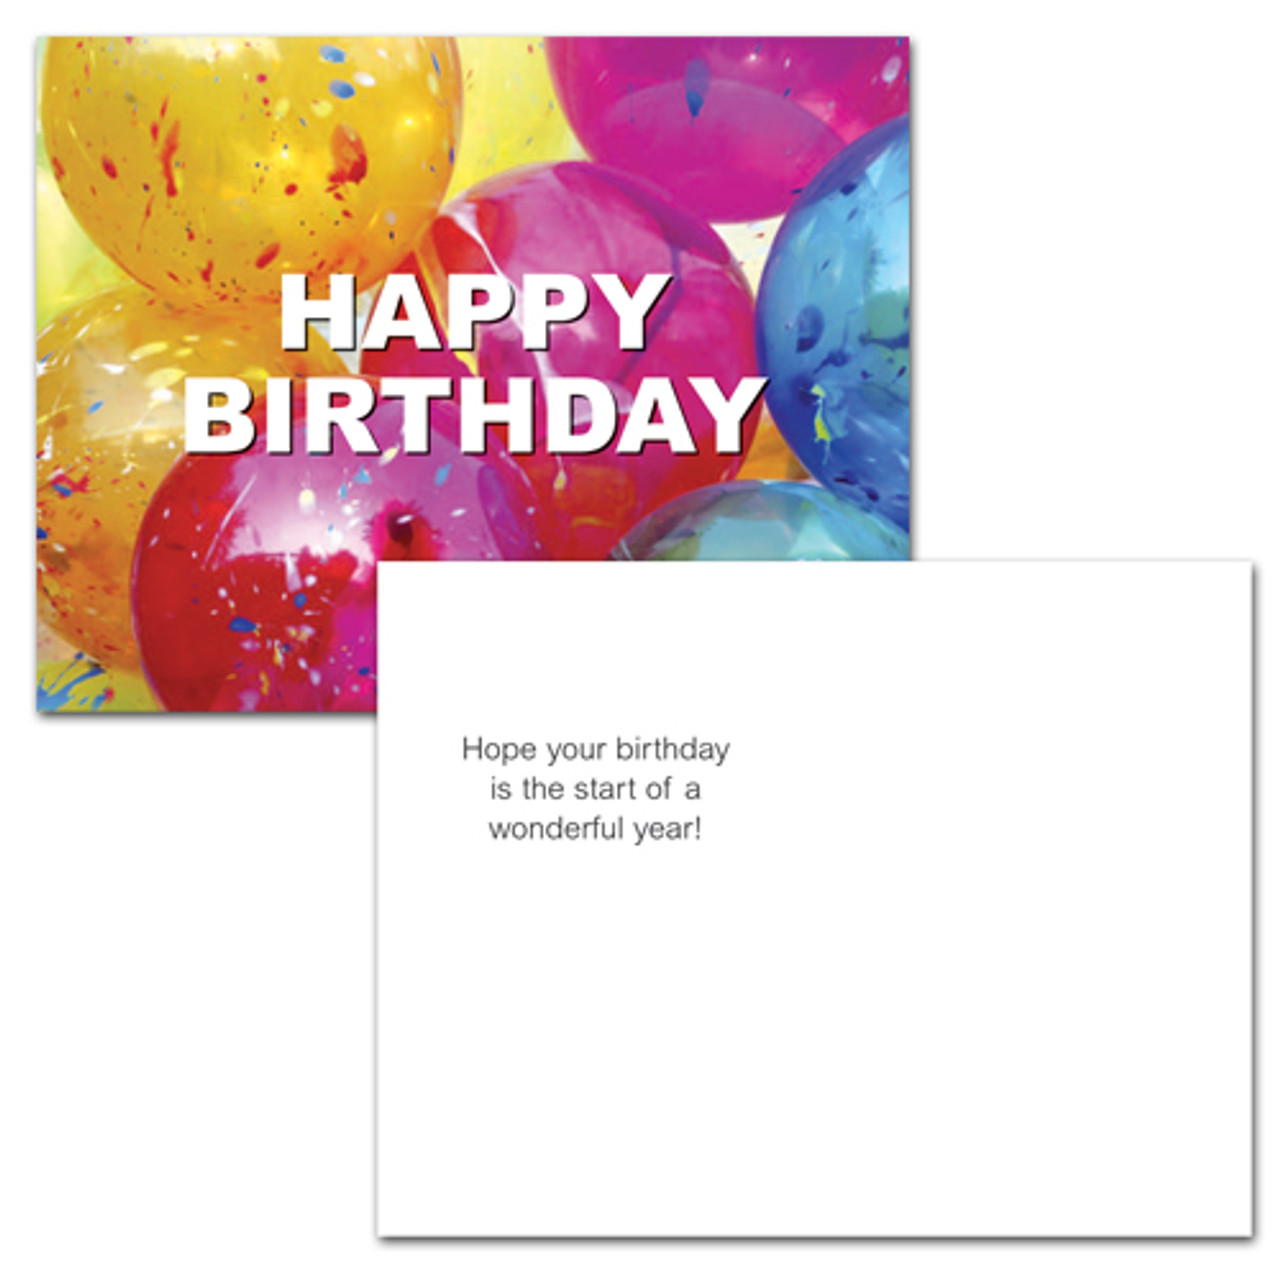 """Birthday postcard """"Bright Balloons"""" on the other side has the words  """"hope your birthday is the start of a wonderful year!"""" and space for a message and name and mailing address.  12 of this birthday postcards style per box for corporate, business or school use."""